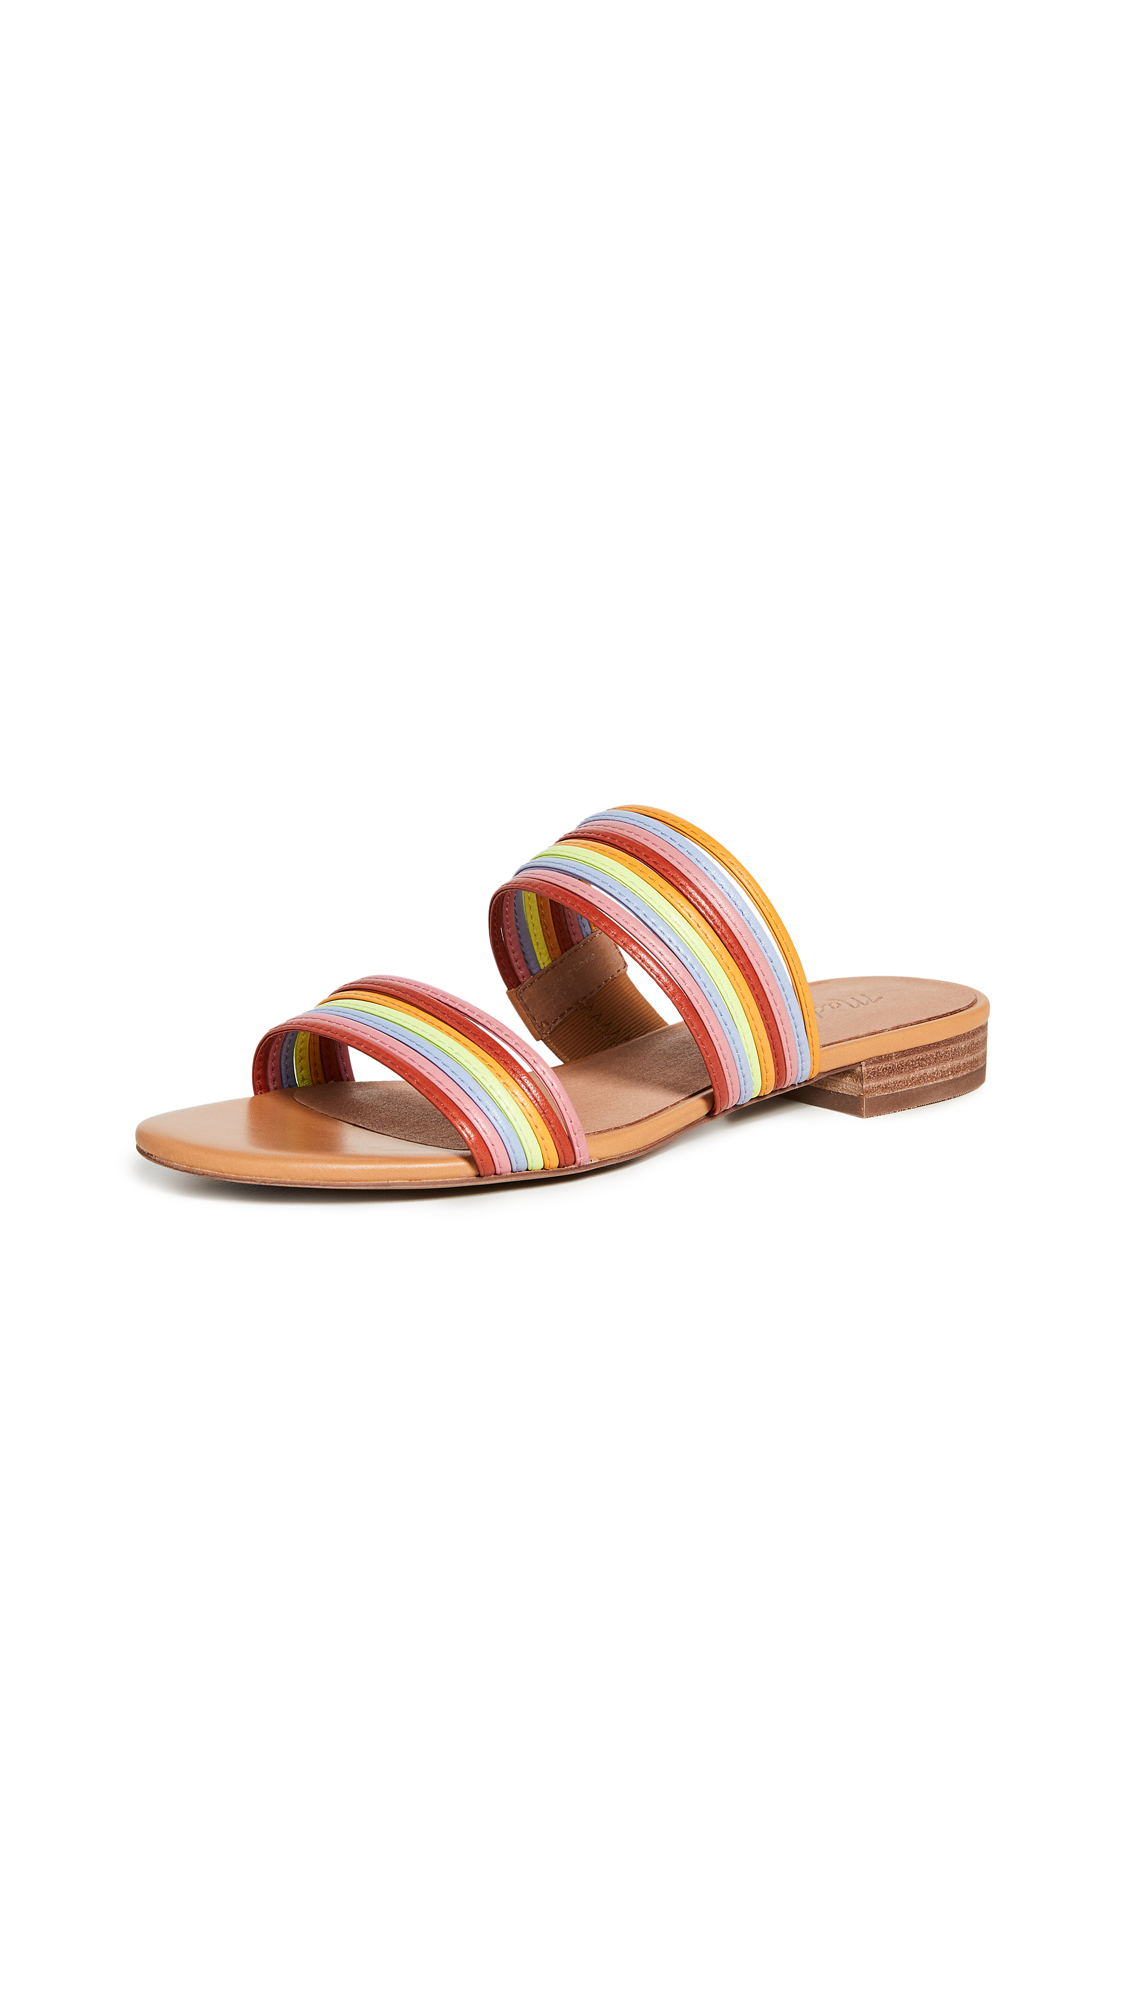 Buy Madewell The Meg Slide Sandals online, shop Madewell